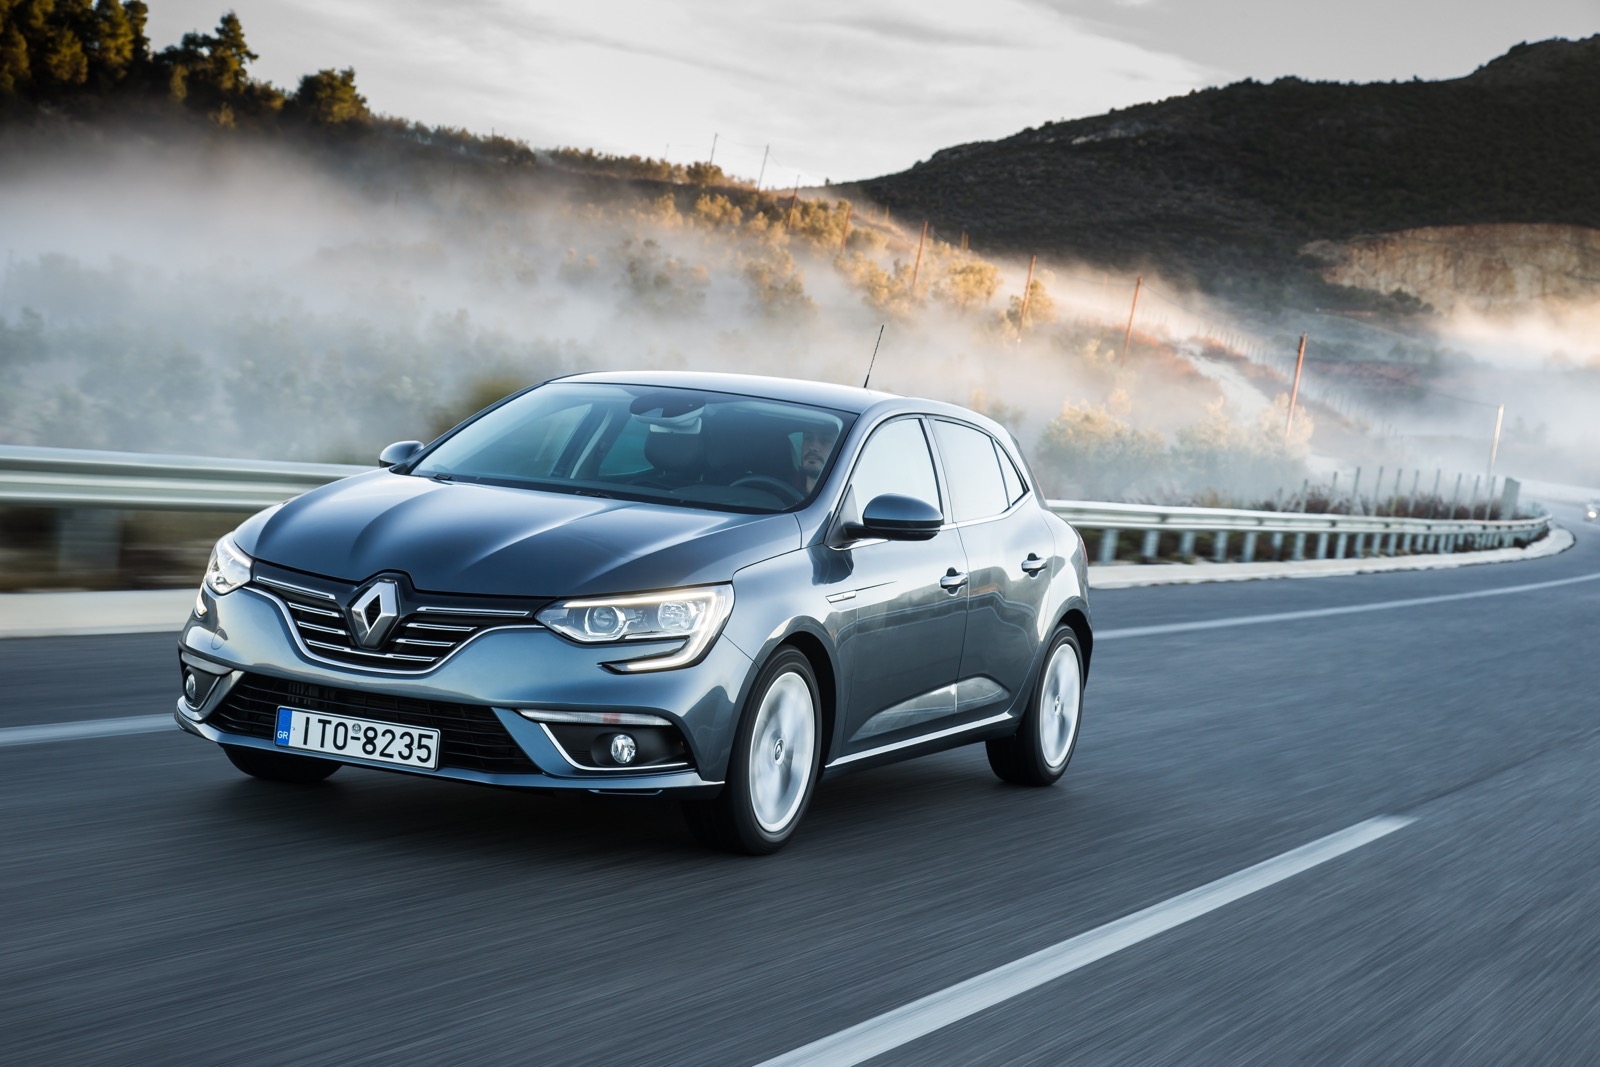 First_Drive_Renault_Megane_56